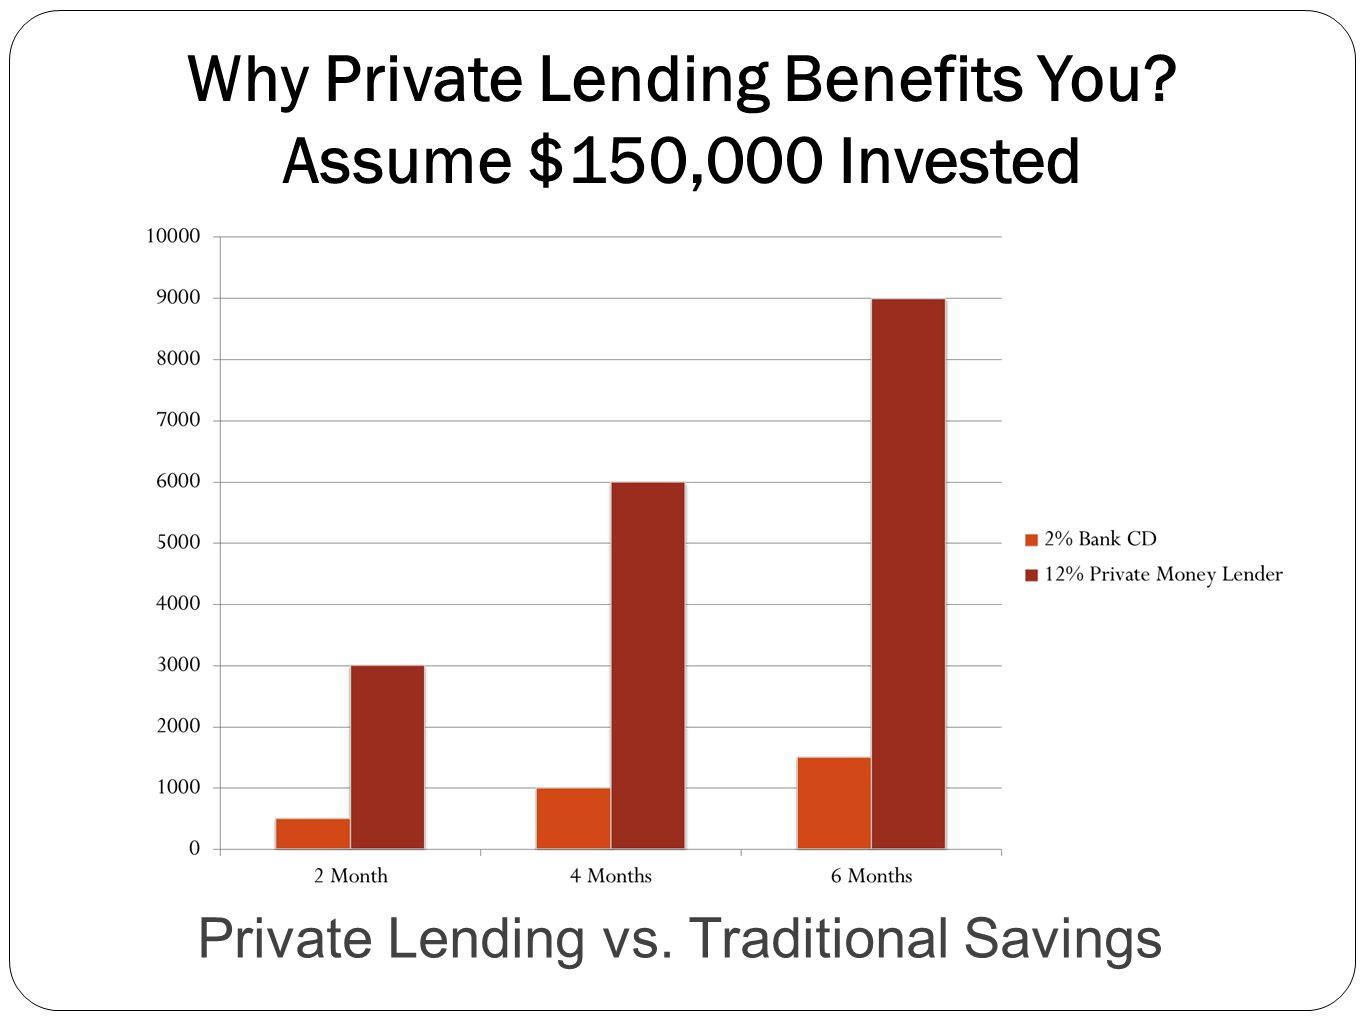 Why Private Lending Benefits You Assume $150,000 Invested